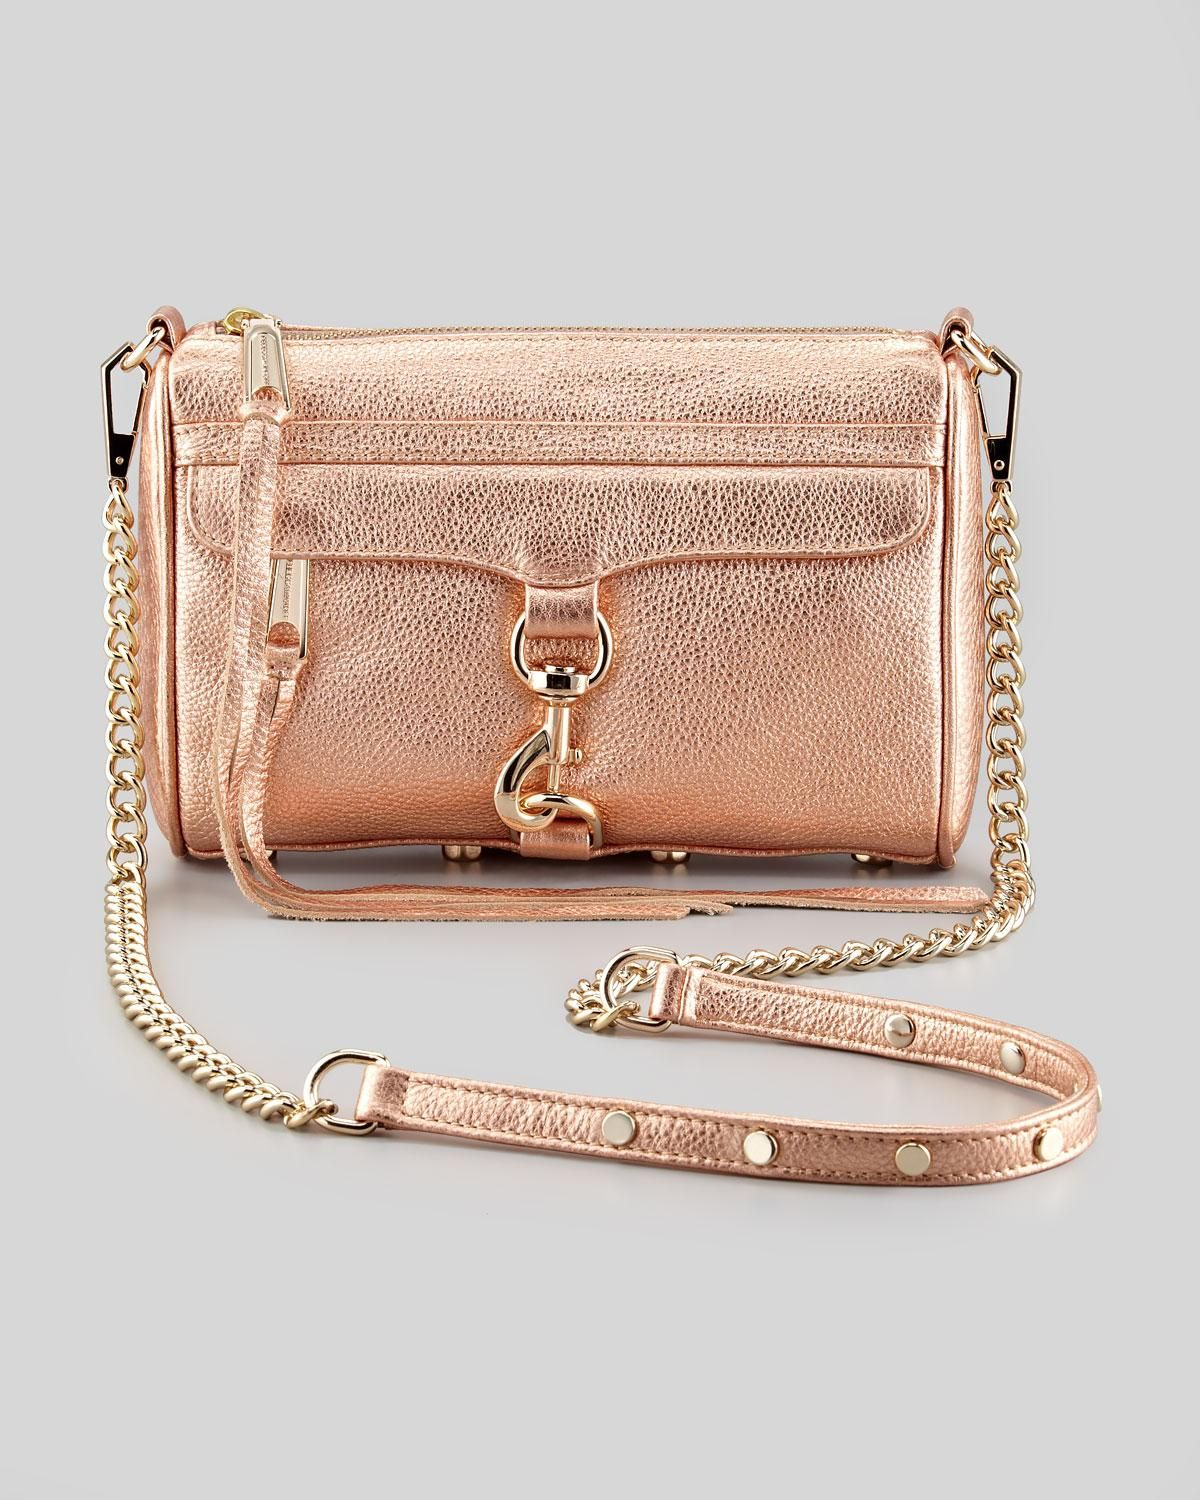 Rebecca Minkoff Mini M.A.C. Crossbody Bag,Rose Gold Gold